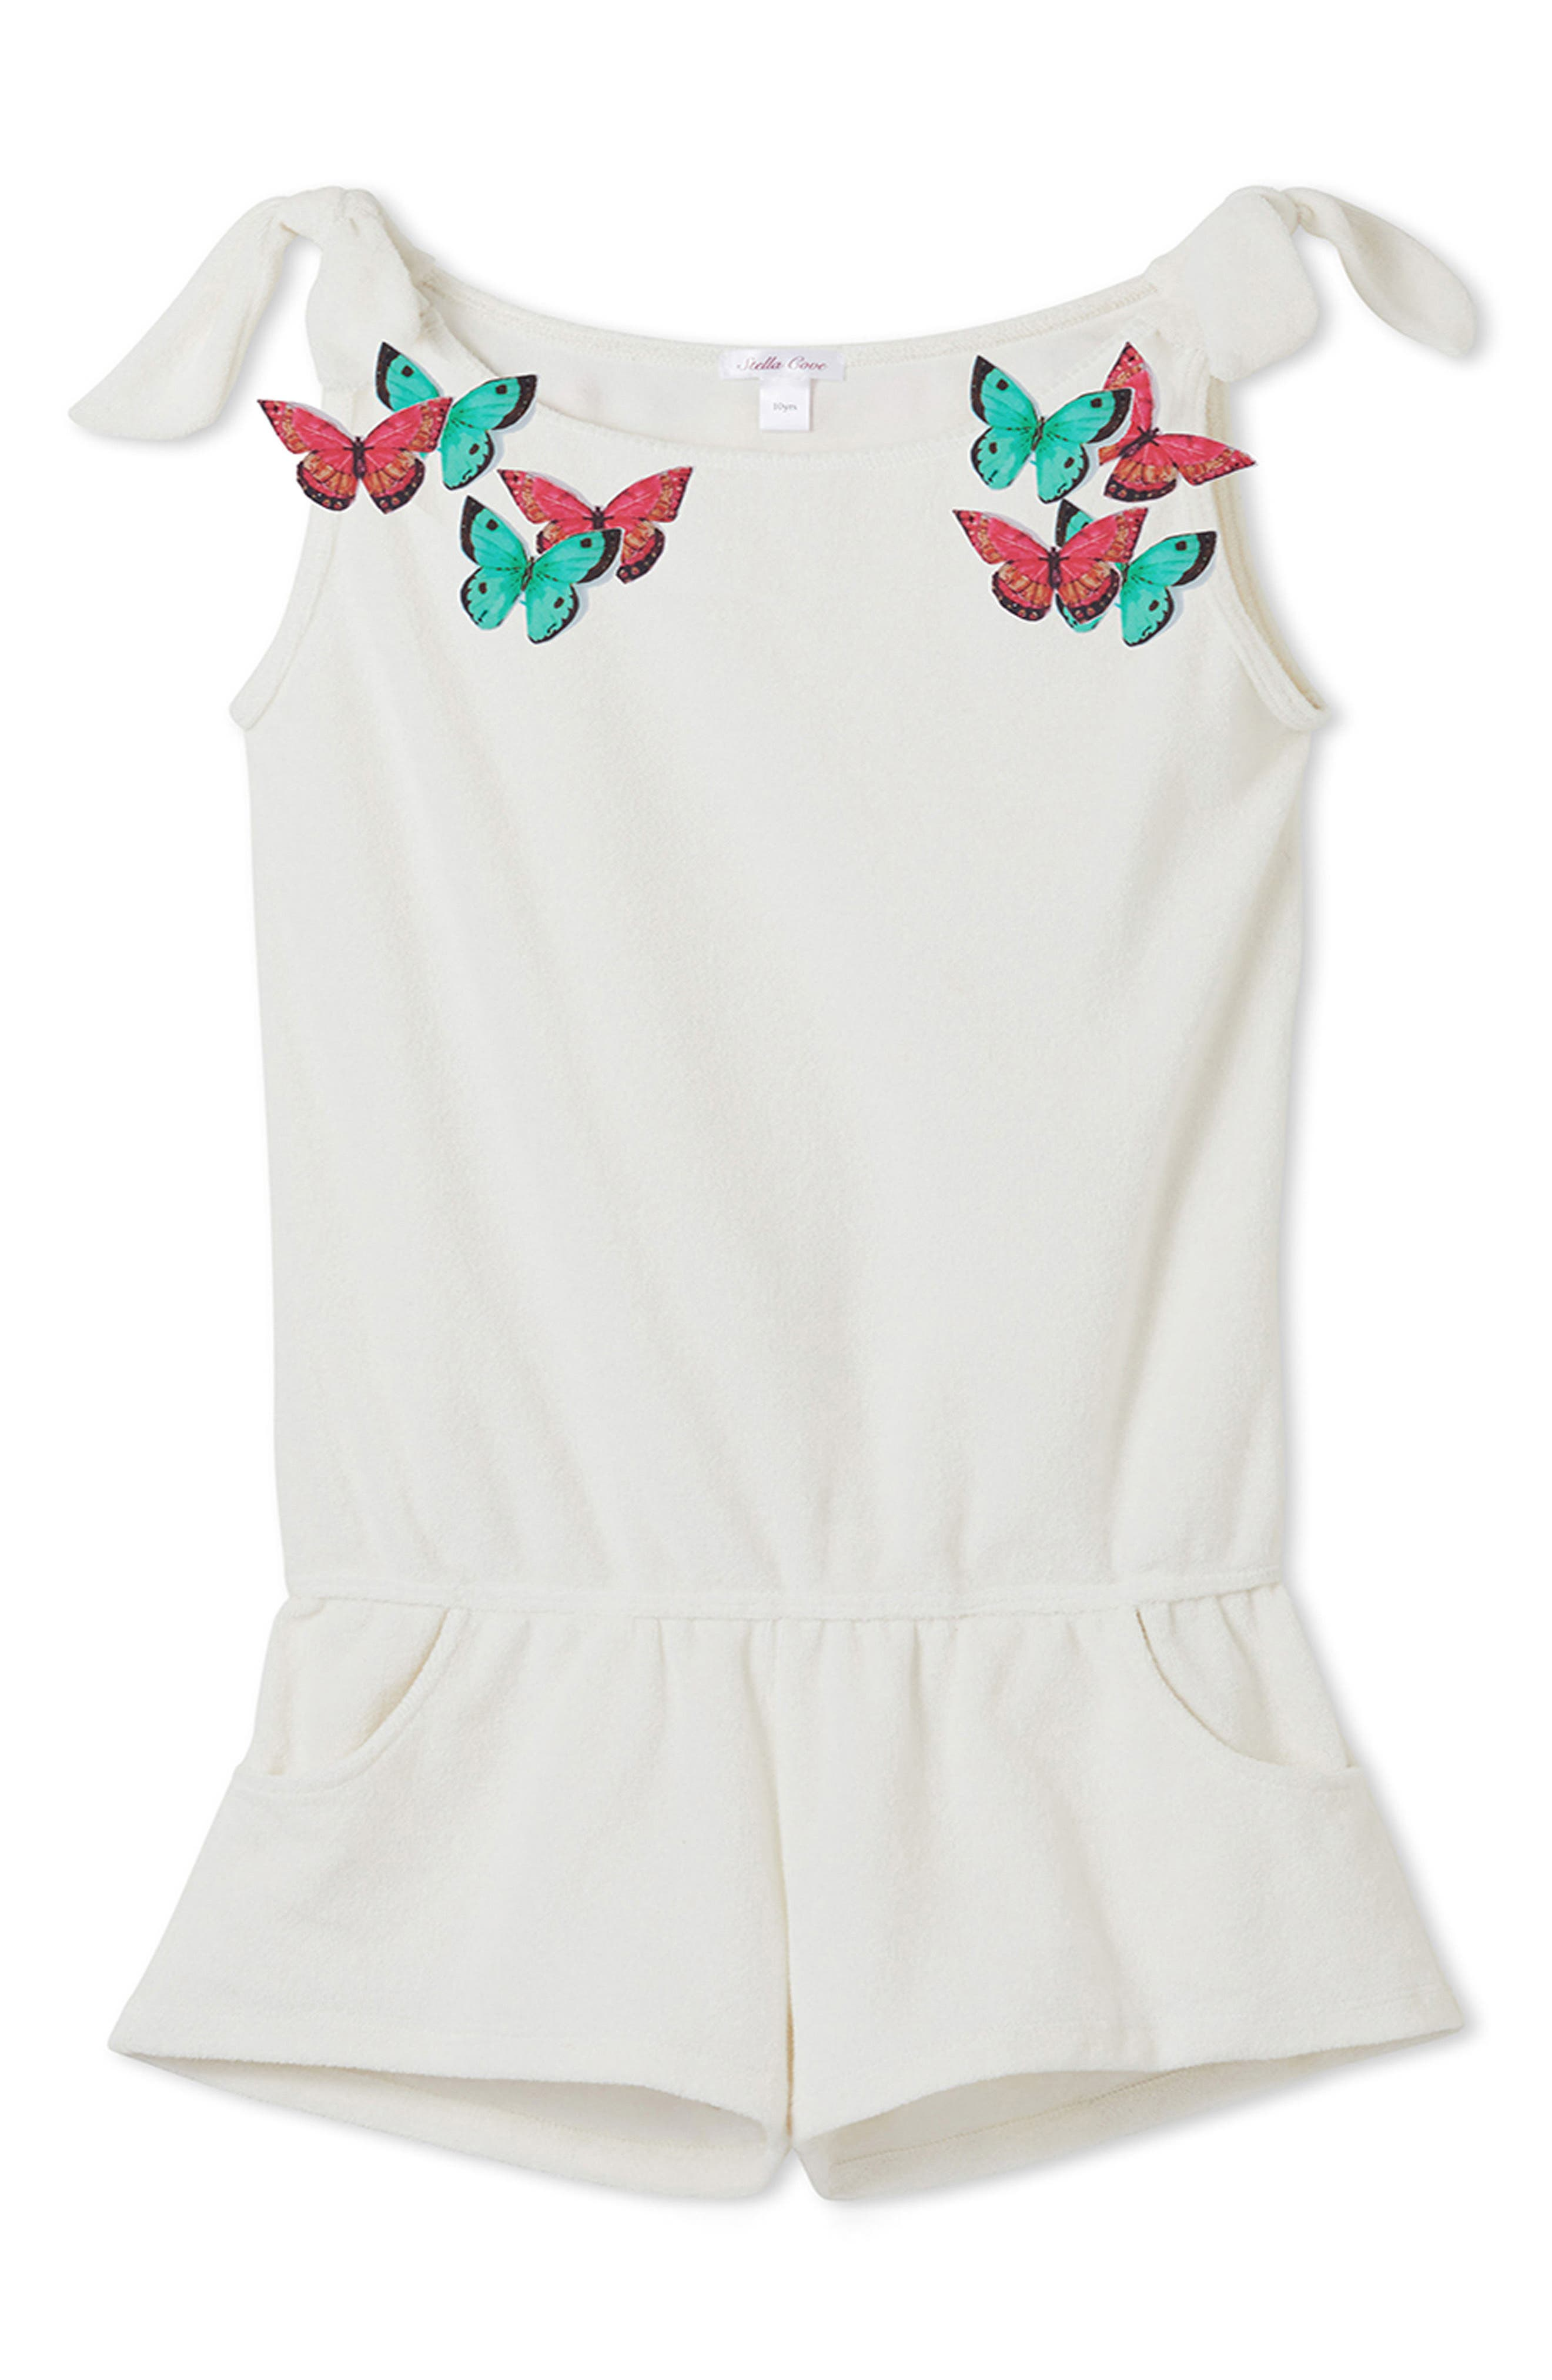 Alternate Image 1 Selected - Stella Cove Butterfly Cover-Up Romper (Toddler Girls & Little Girls)